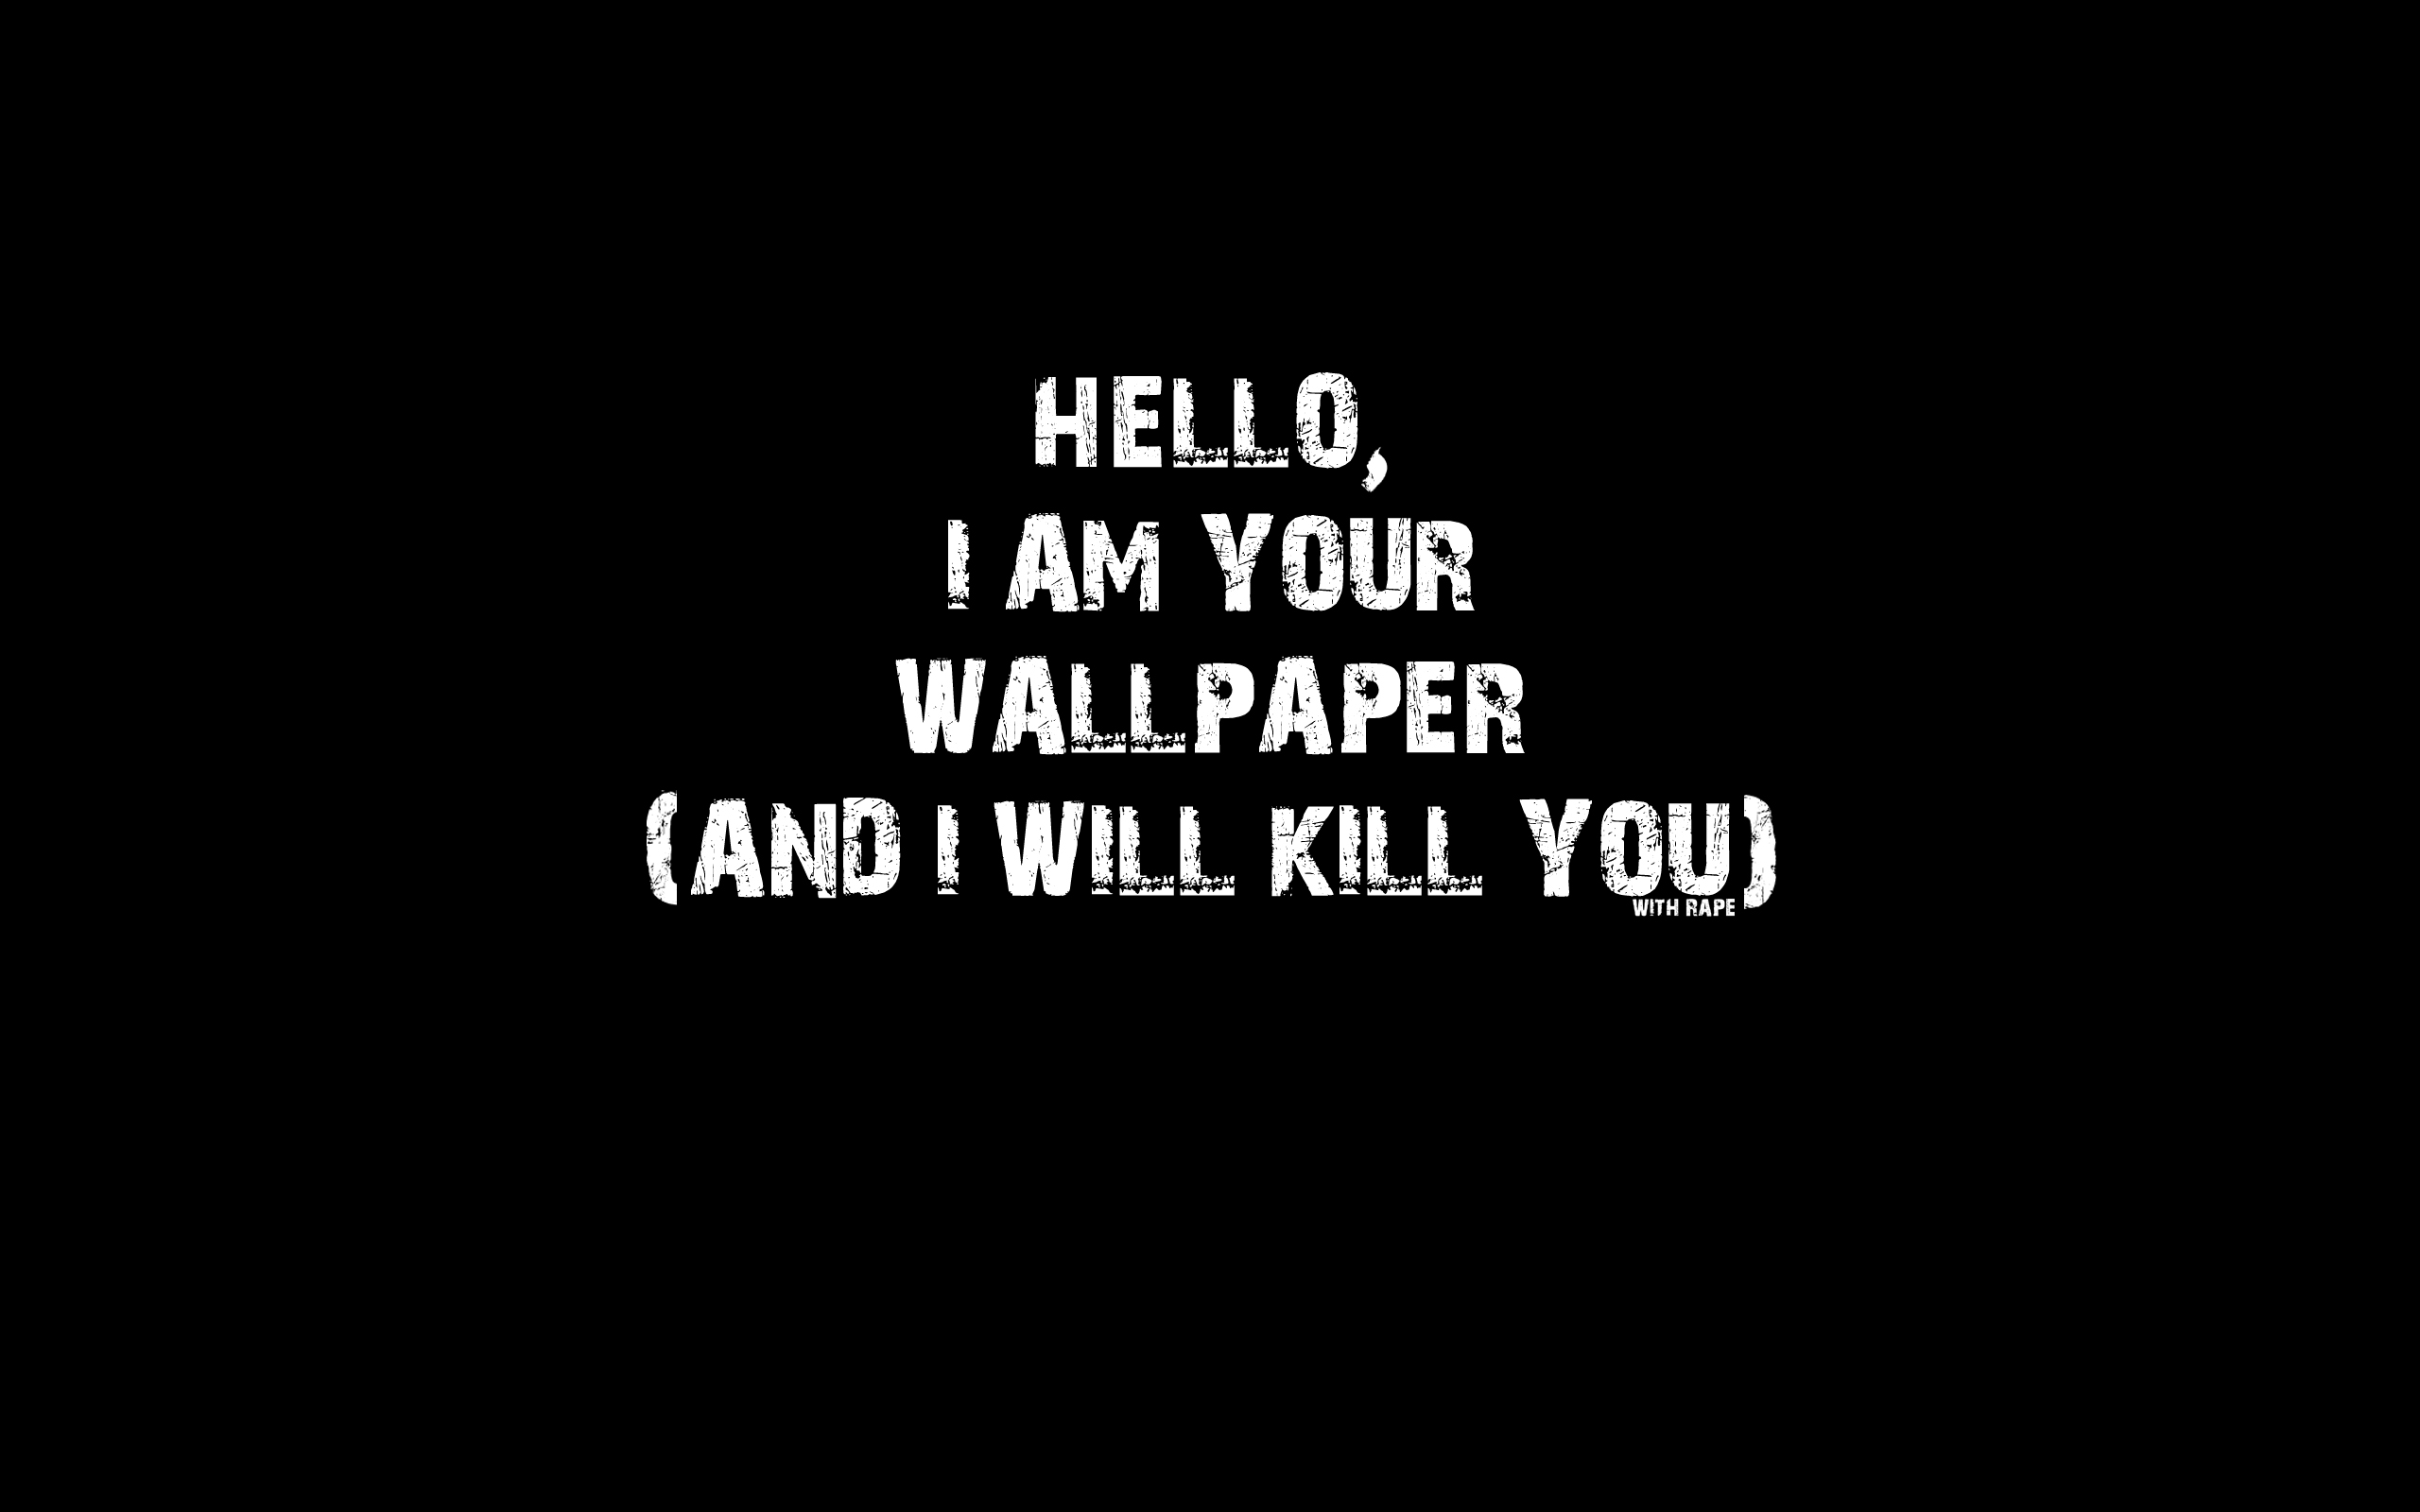 Free Download Hello I Am Your Wallpaper And I Love You Hello I Am